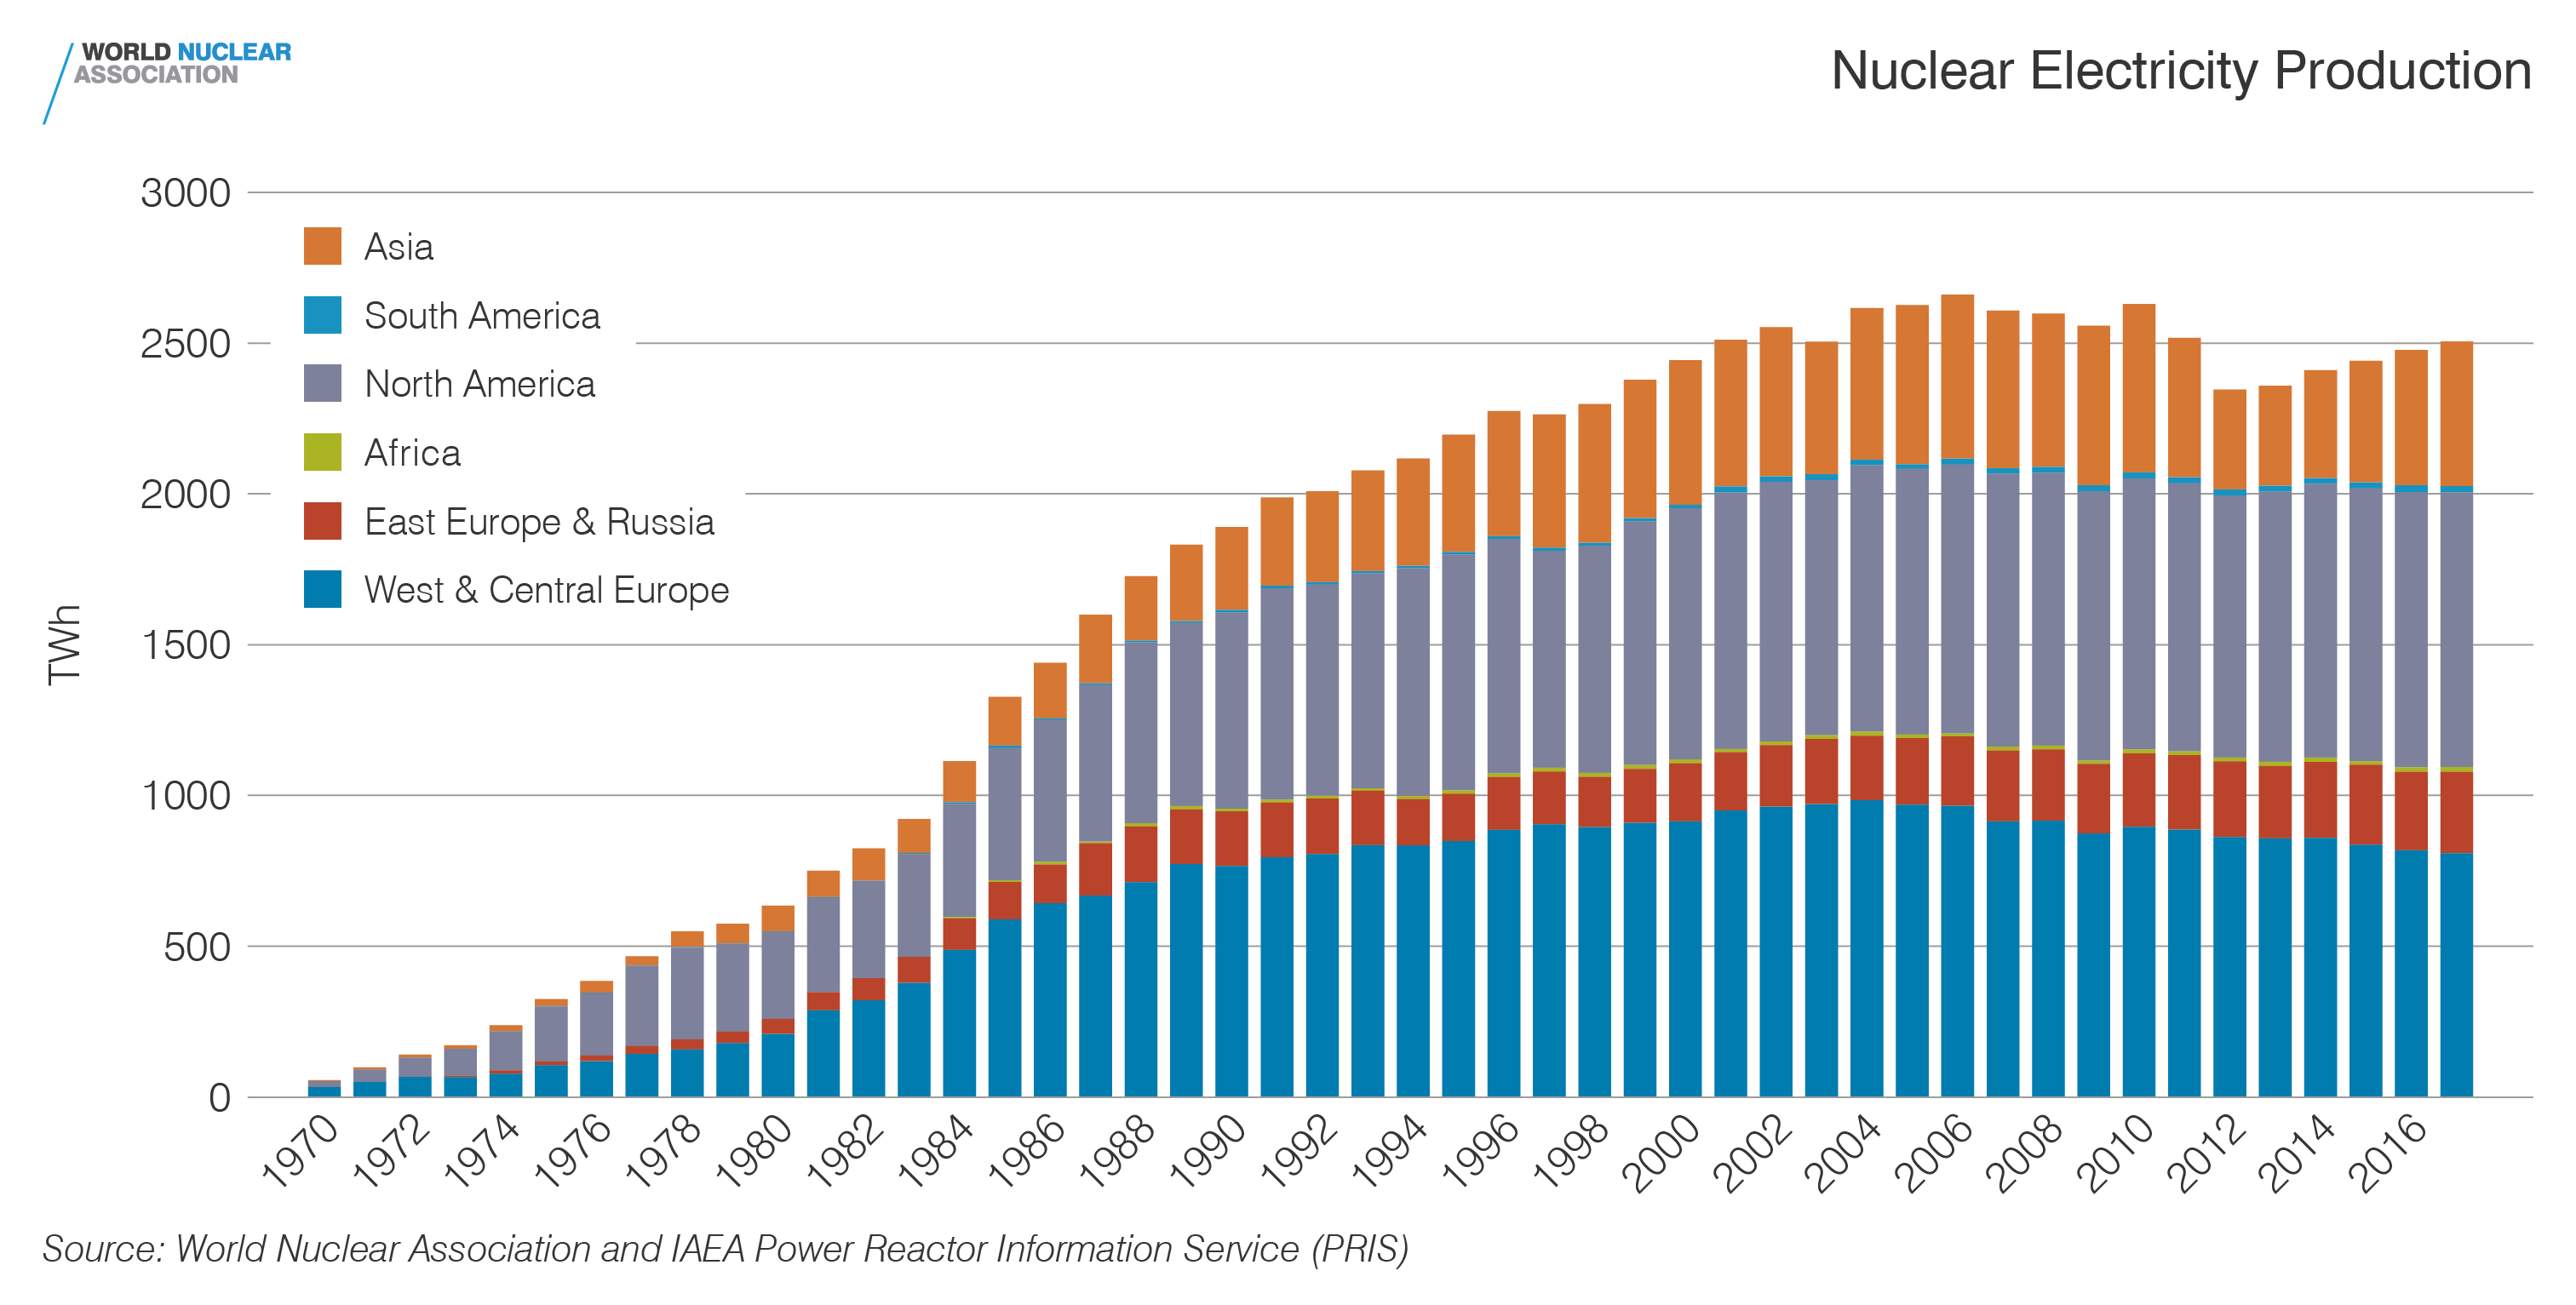 Nuclear electricity production